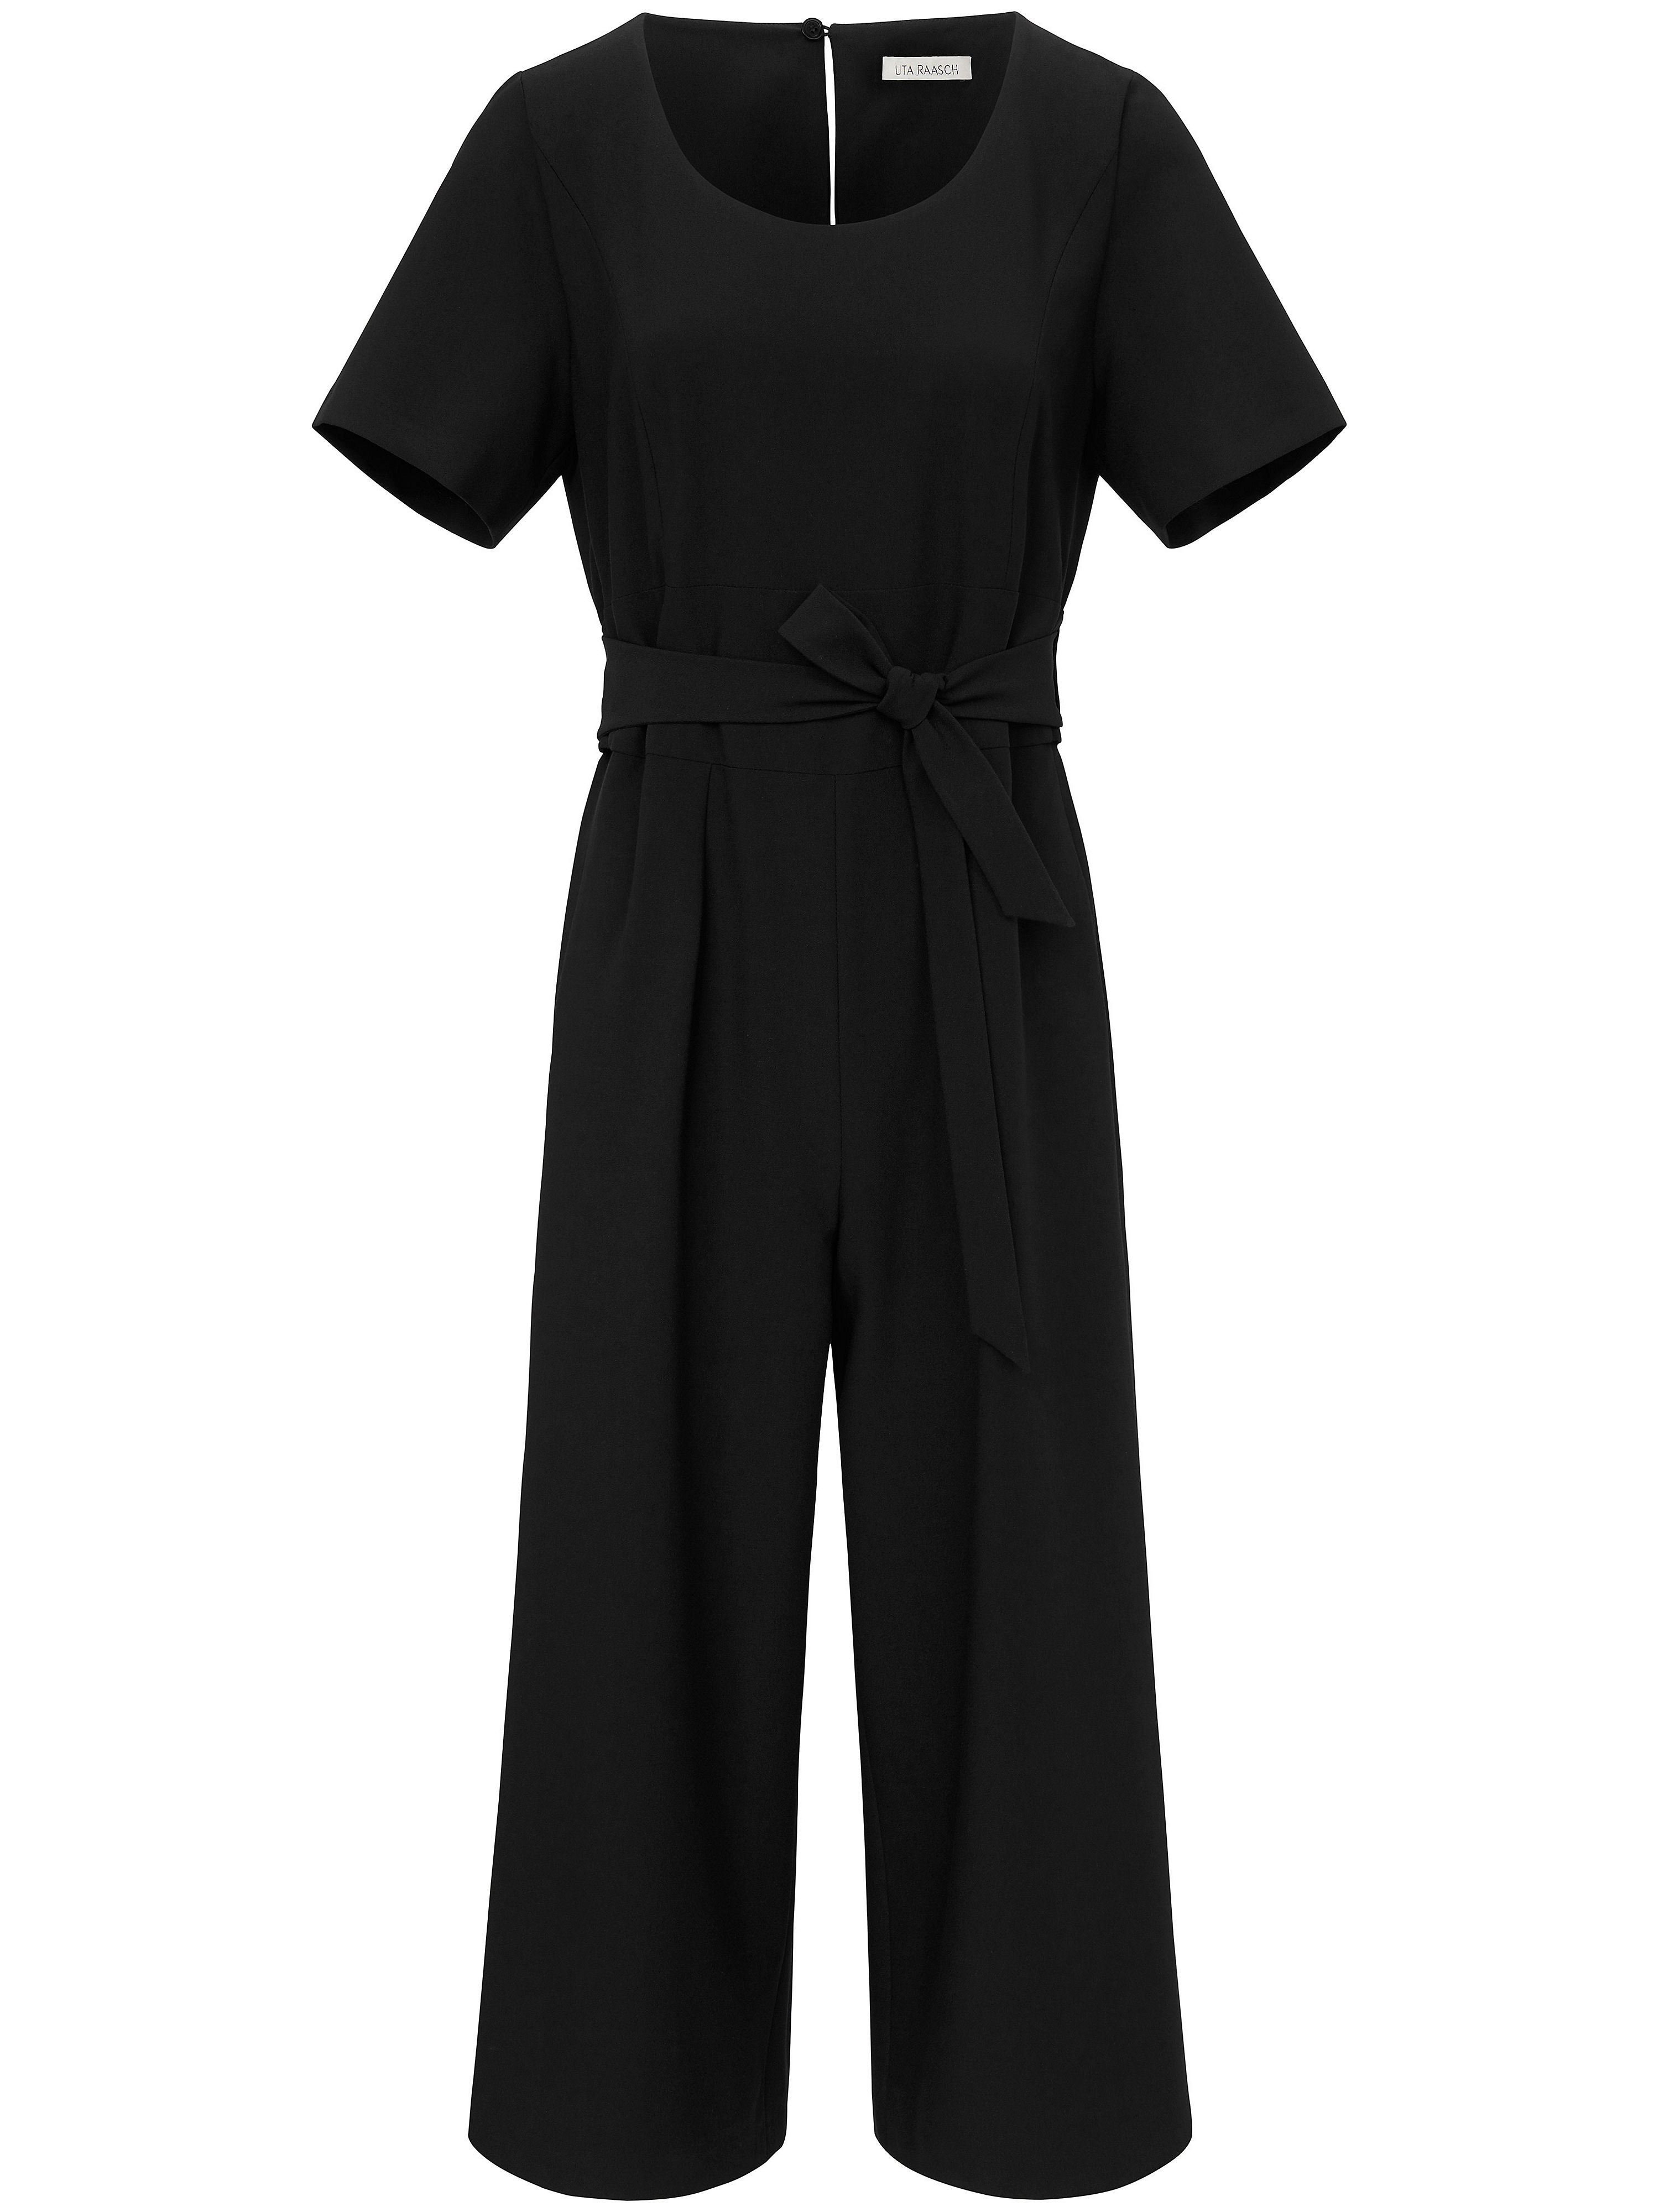 Image of   Jumpsuit Fra Uta Raasch sort